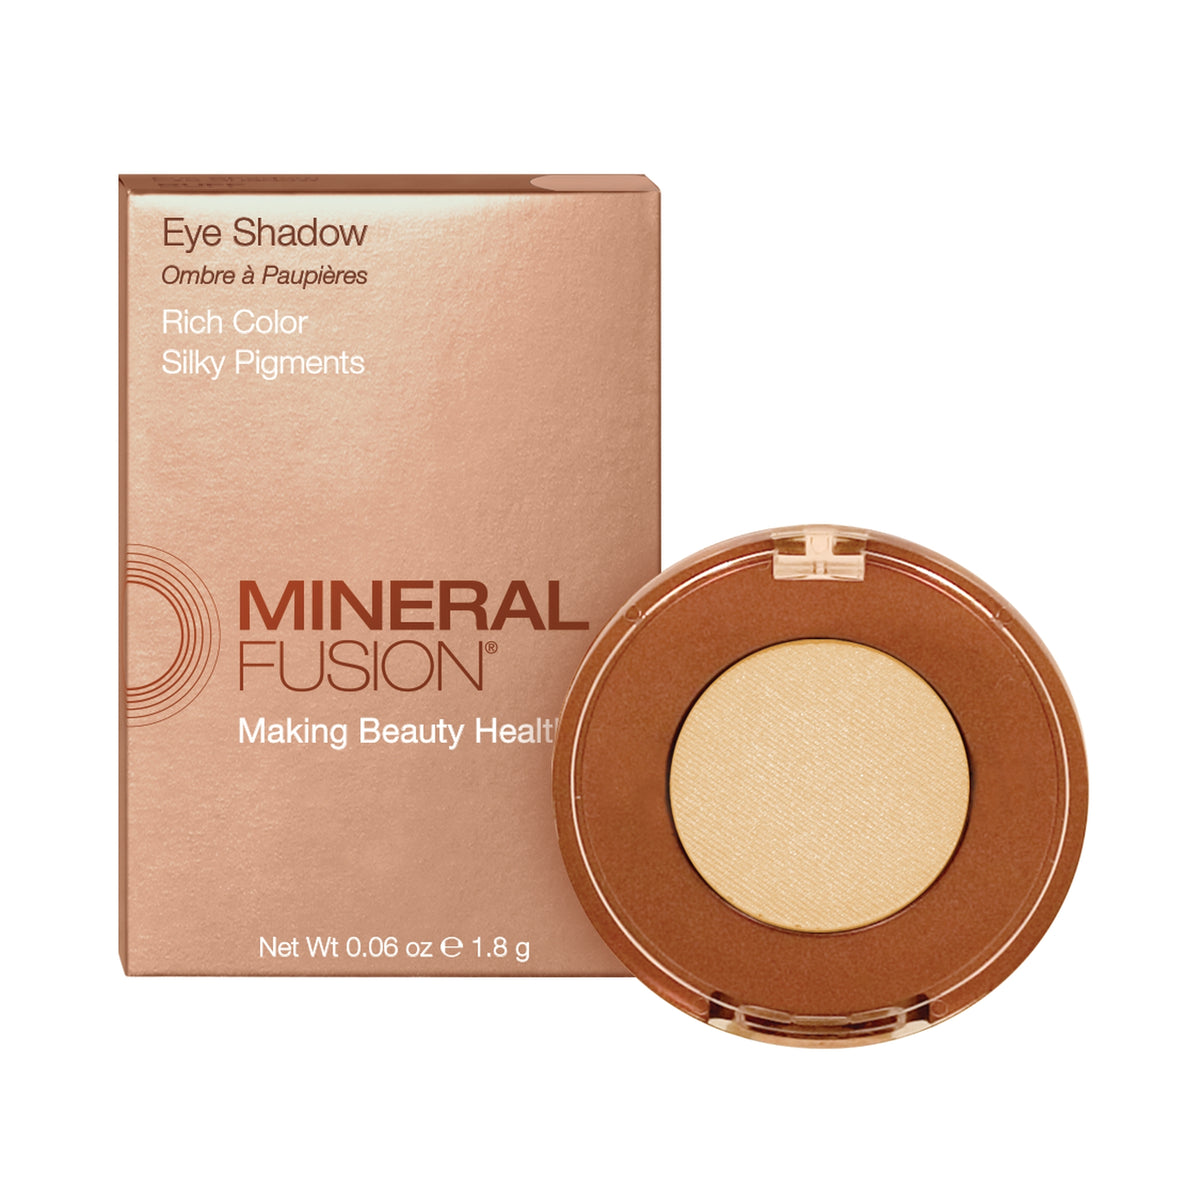 Mineral Fusion Eye Shadow in Rare